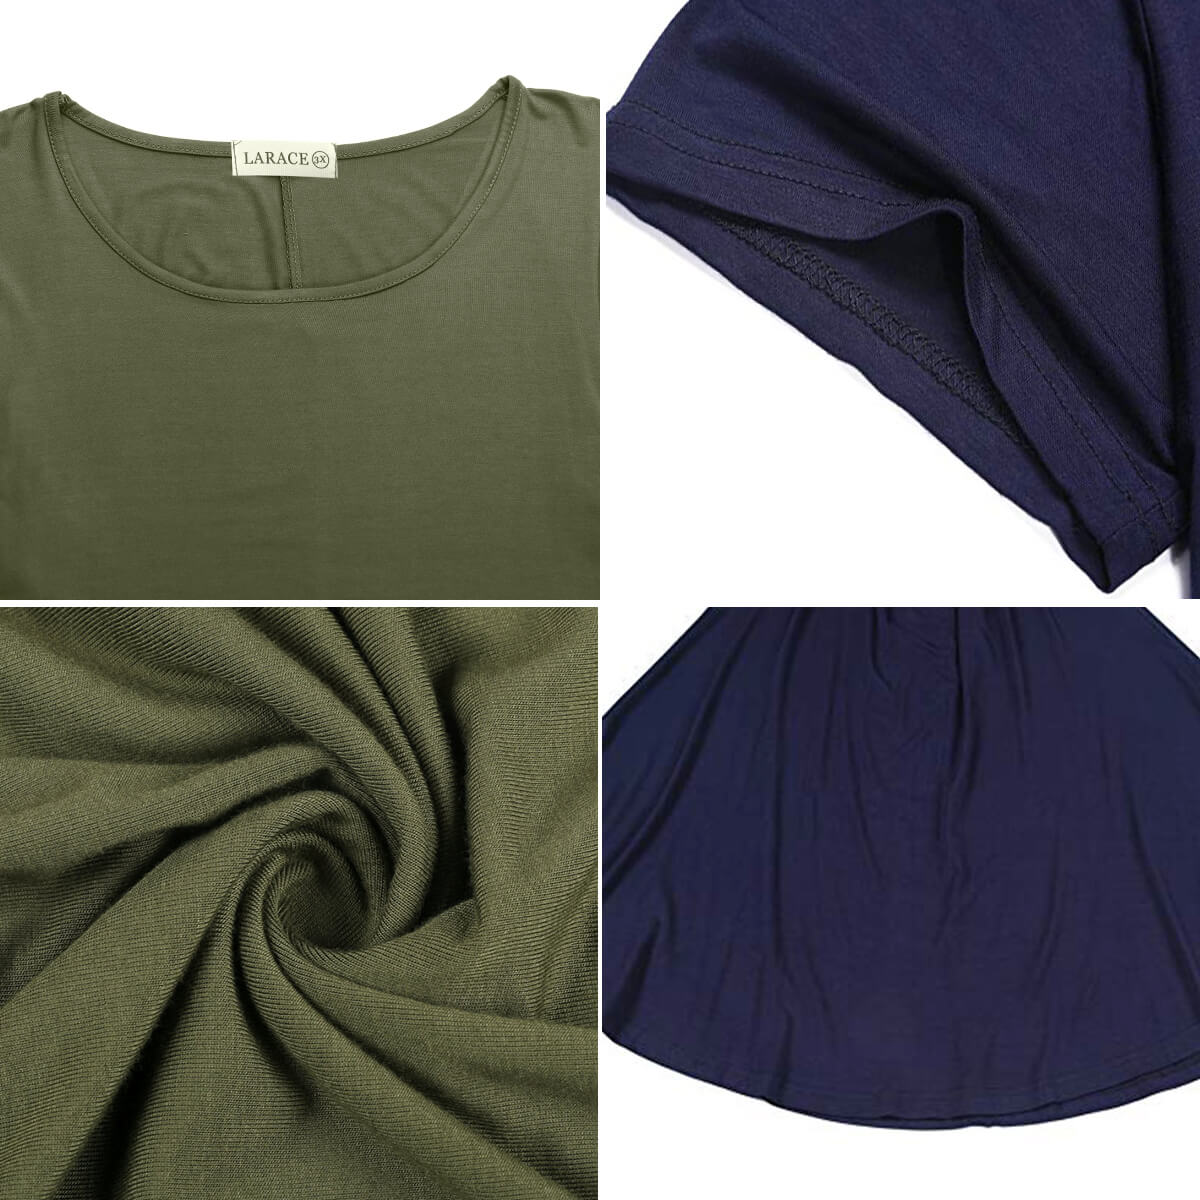 larace tunic tops detail